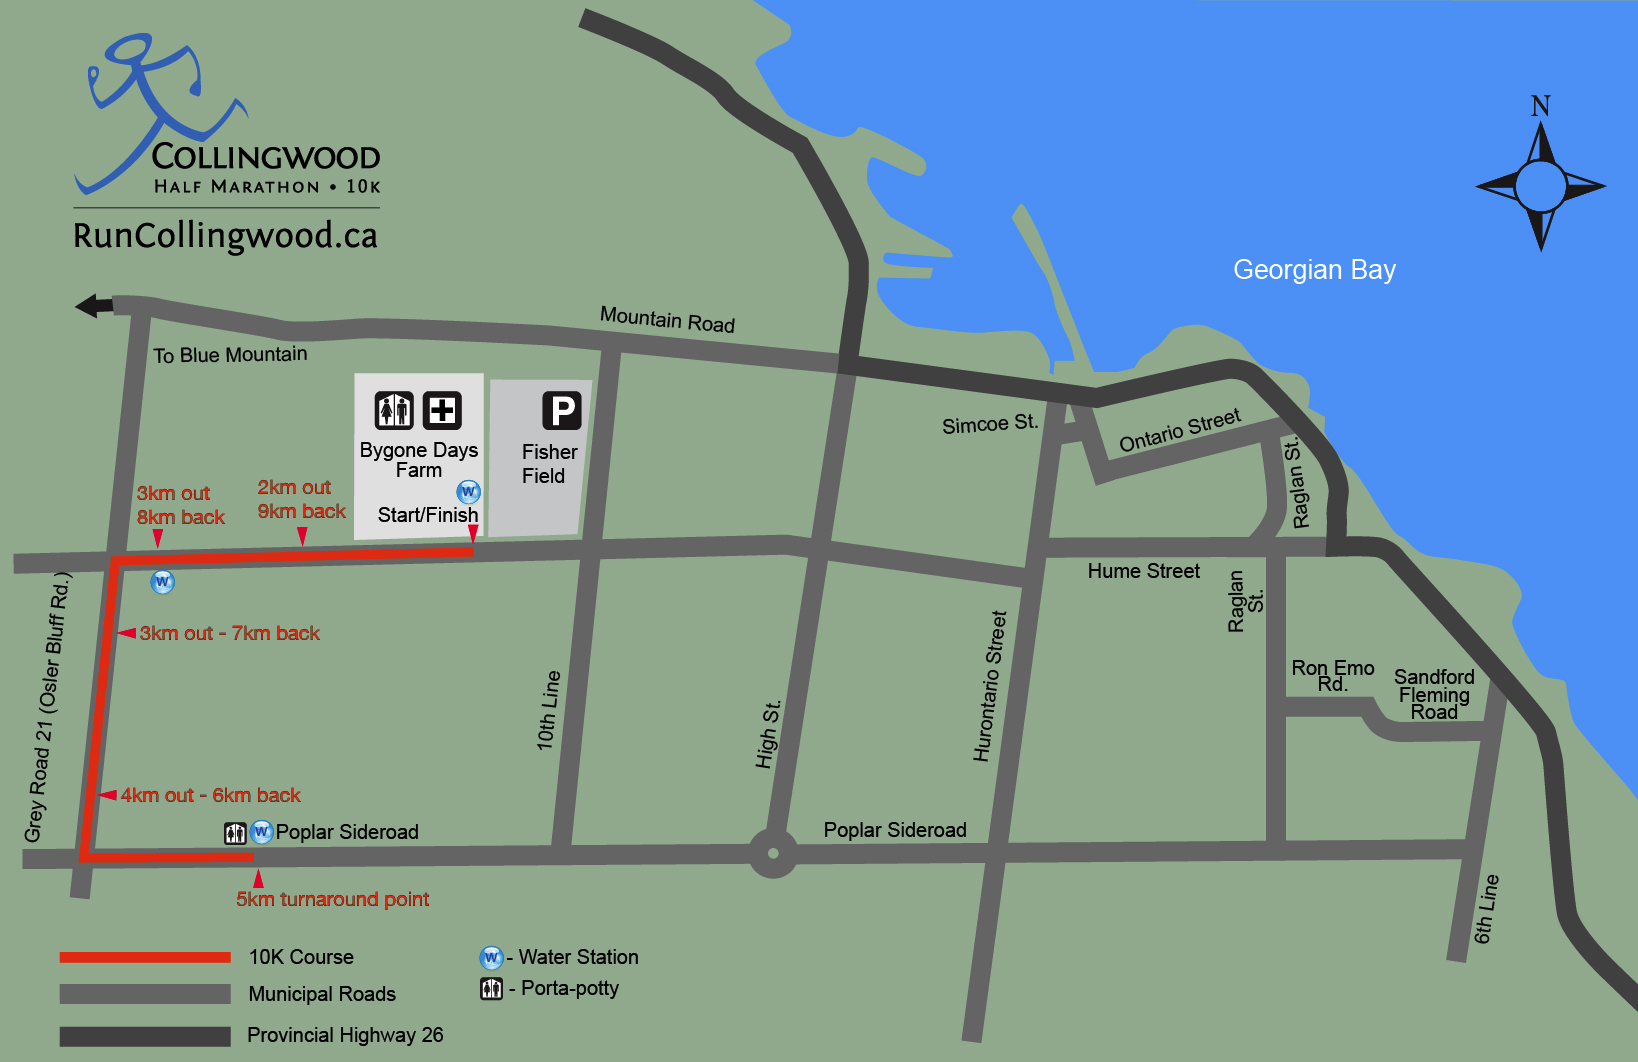 Collingwood 10k map